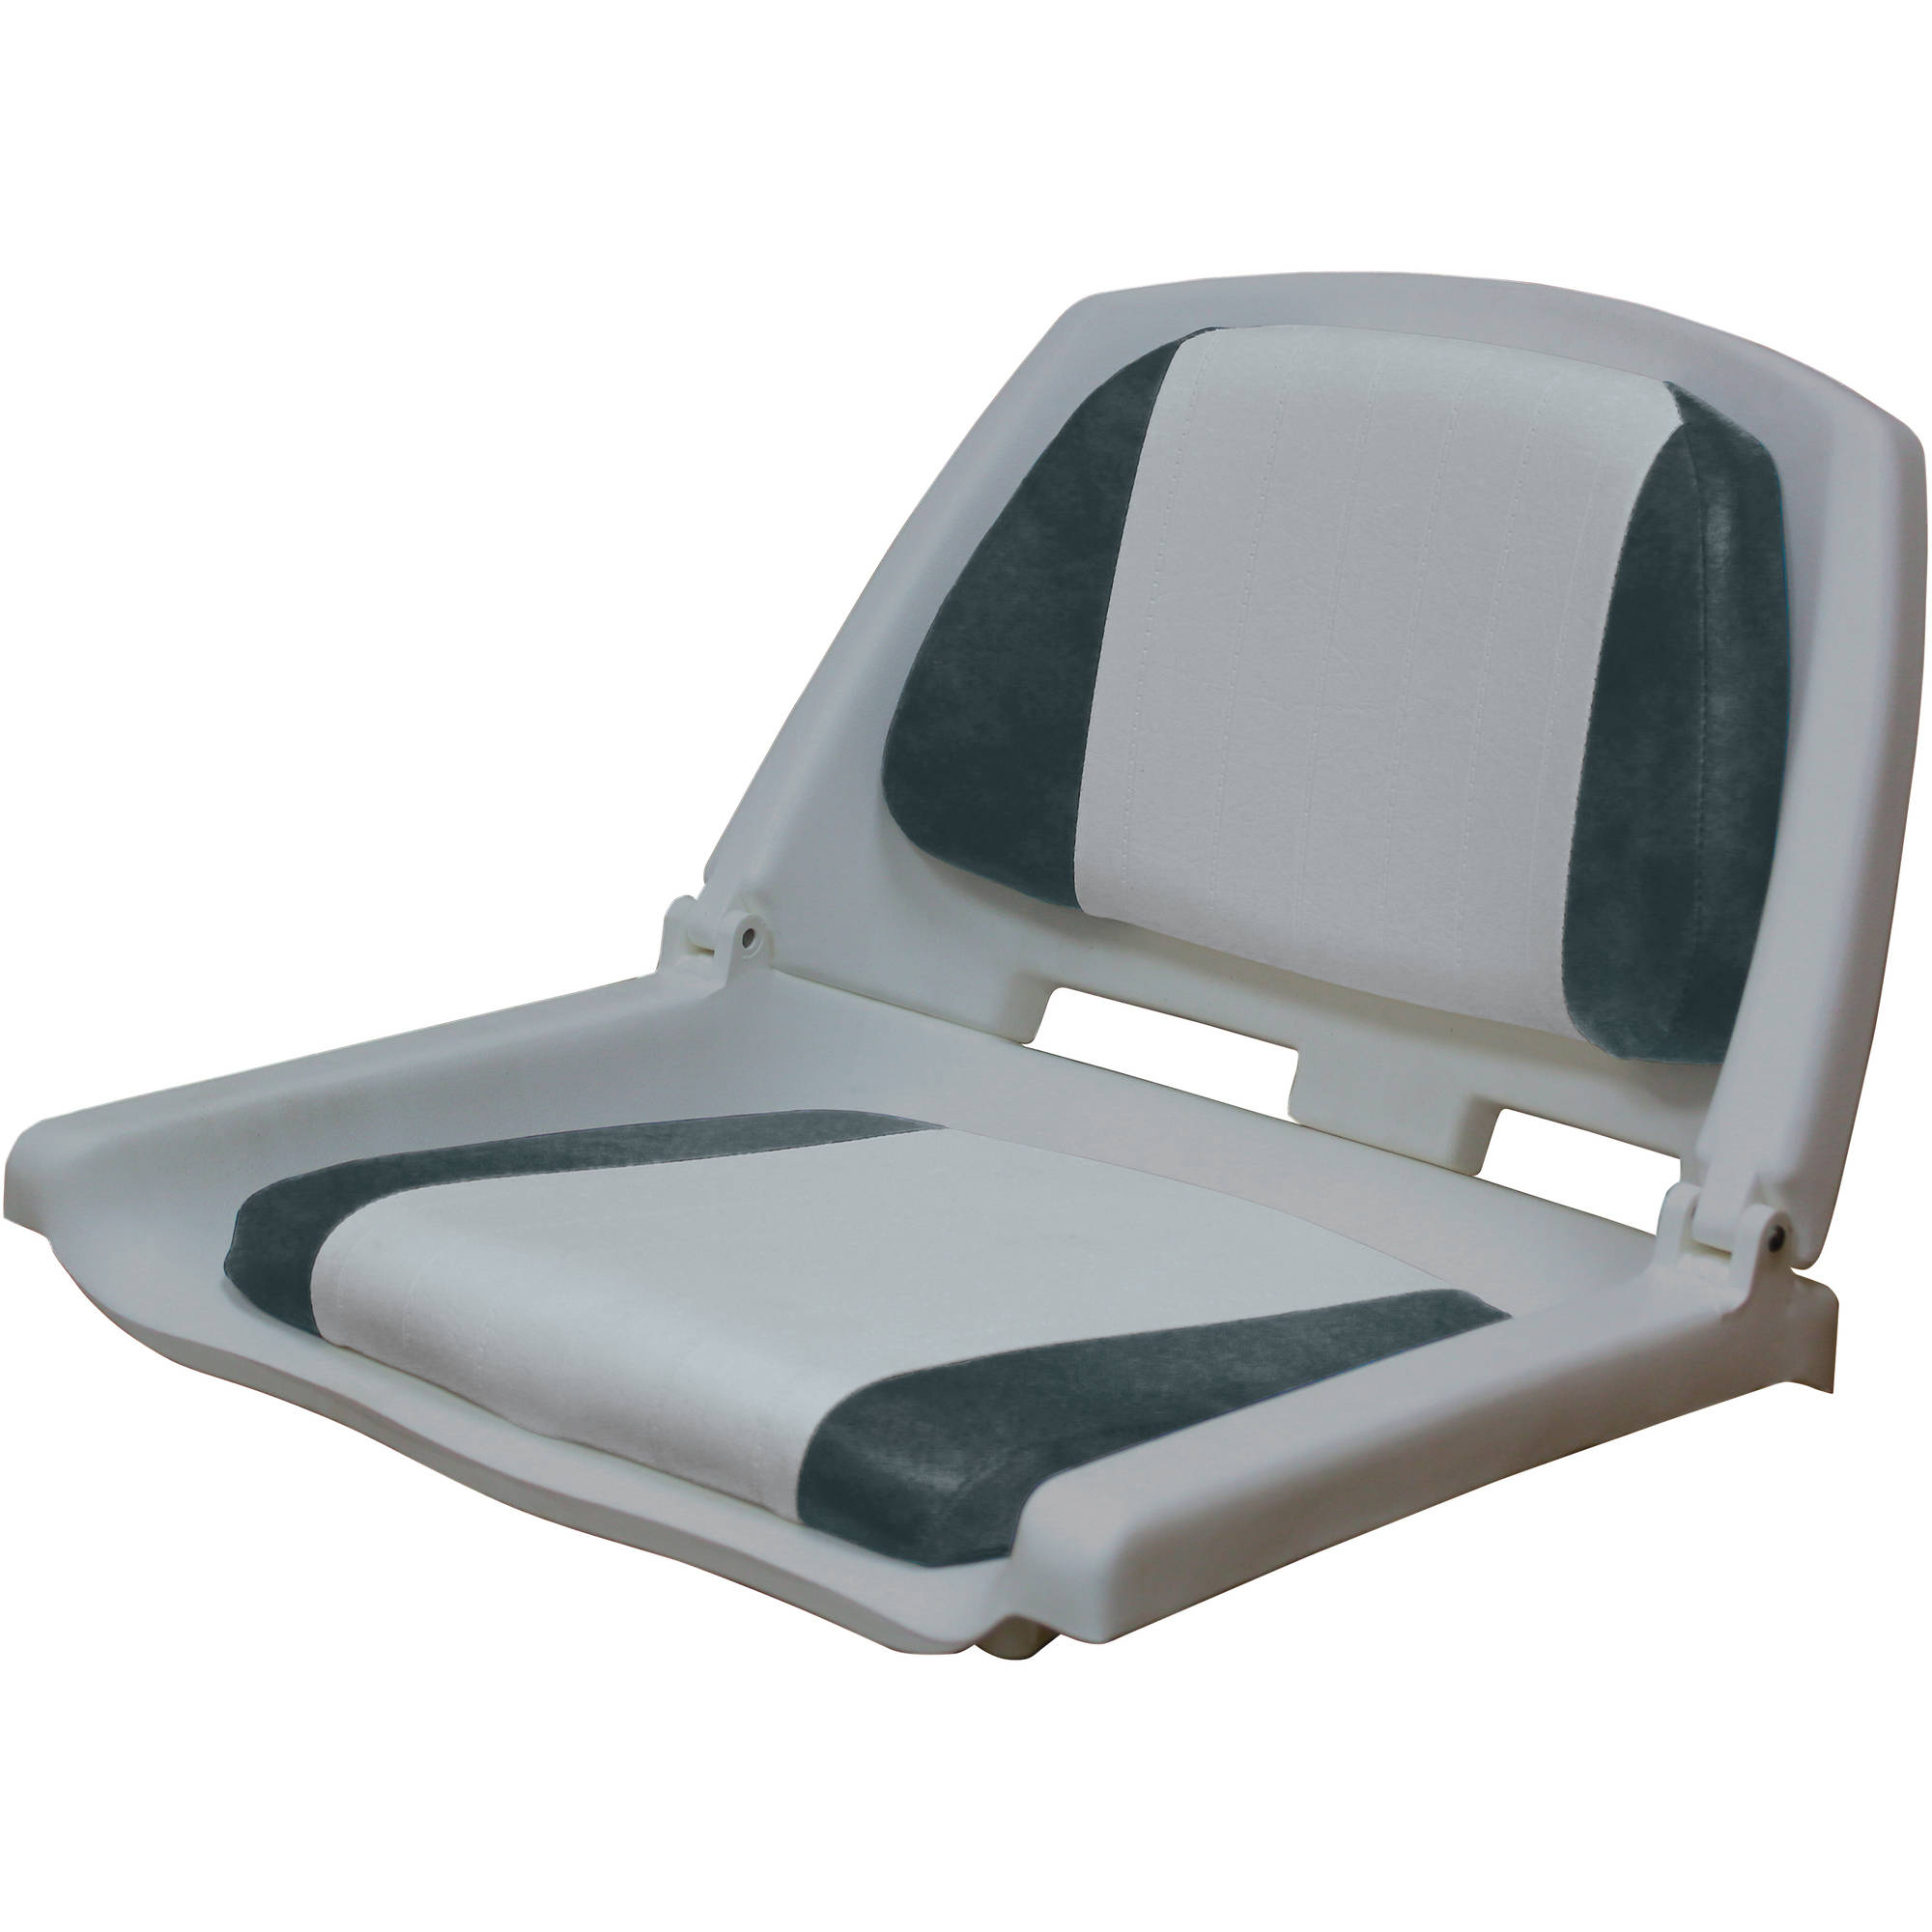 Wise Contour Molded Plastic Seat with Thick Embossed Vinyl Cushion Pads